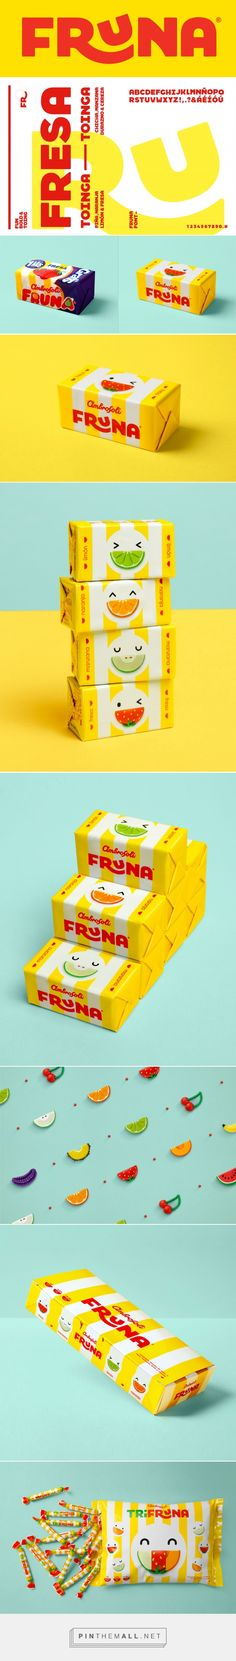 Brand New: New Logo and Packaging for Fruna by Brandlab - created via https://pinthemall.net